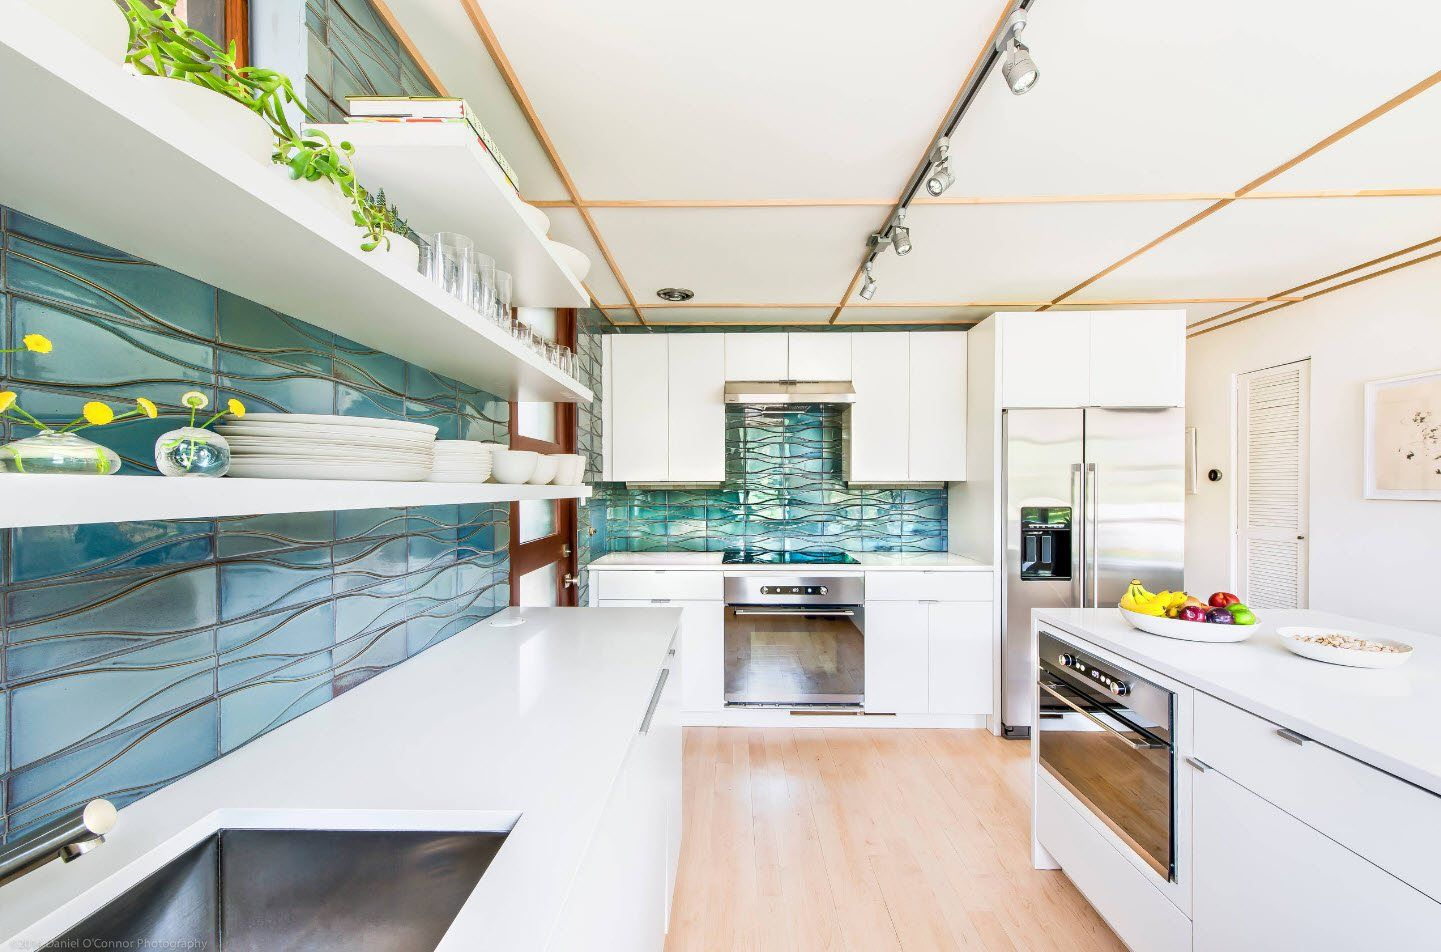 120 Square Feet Kitchen Interior Design Ideas with Photos. Light decorated kitchen with turquoise inlays and splashback